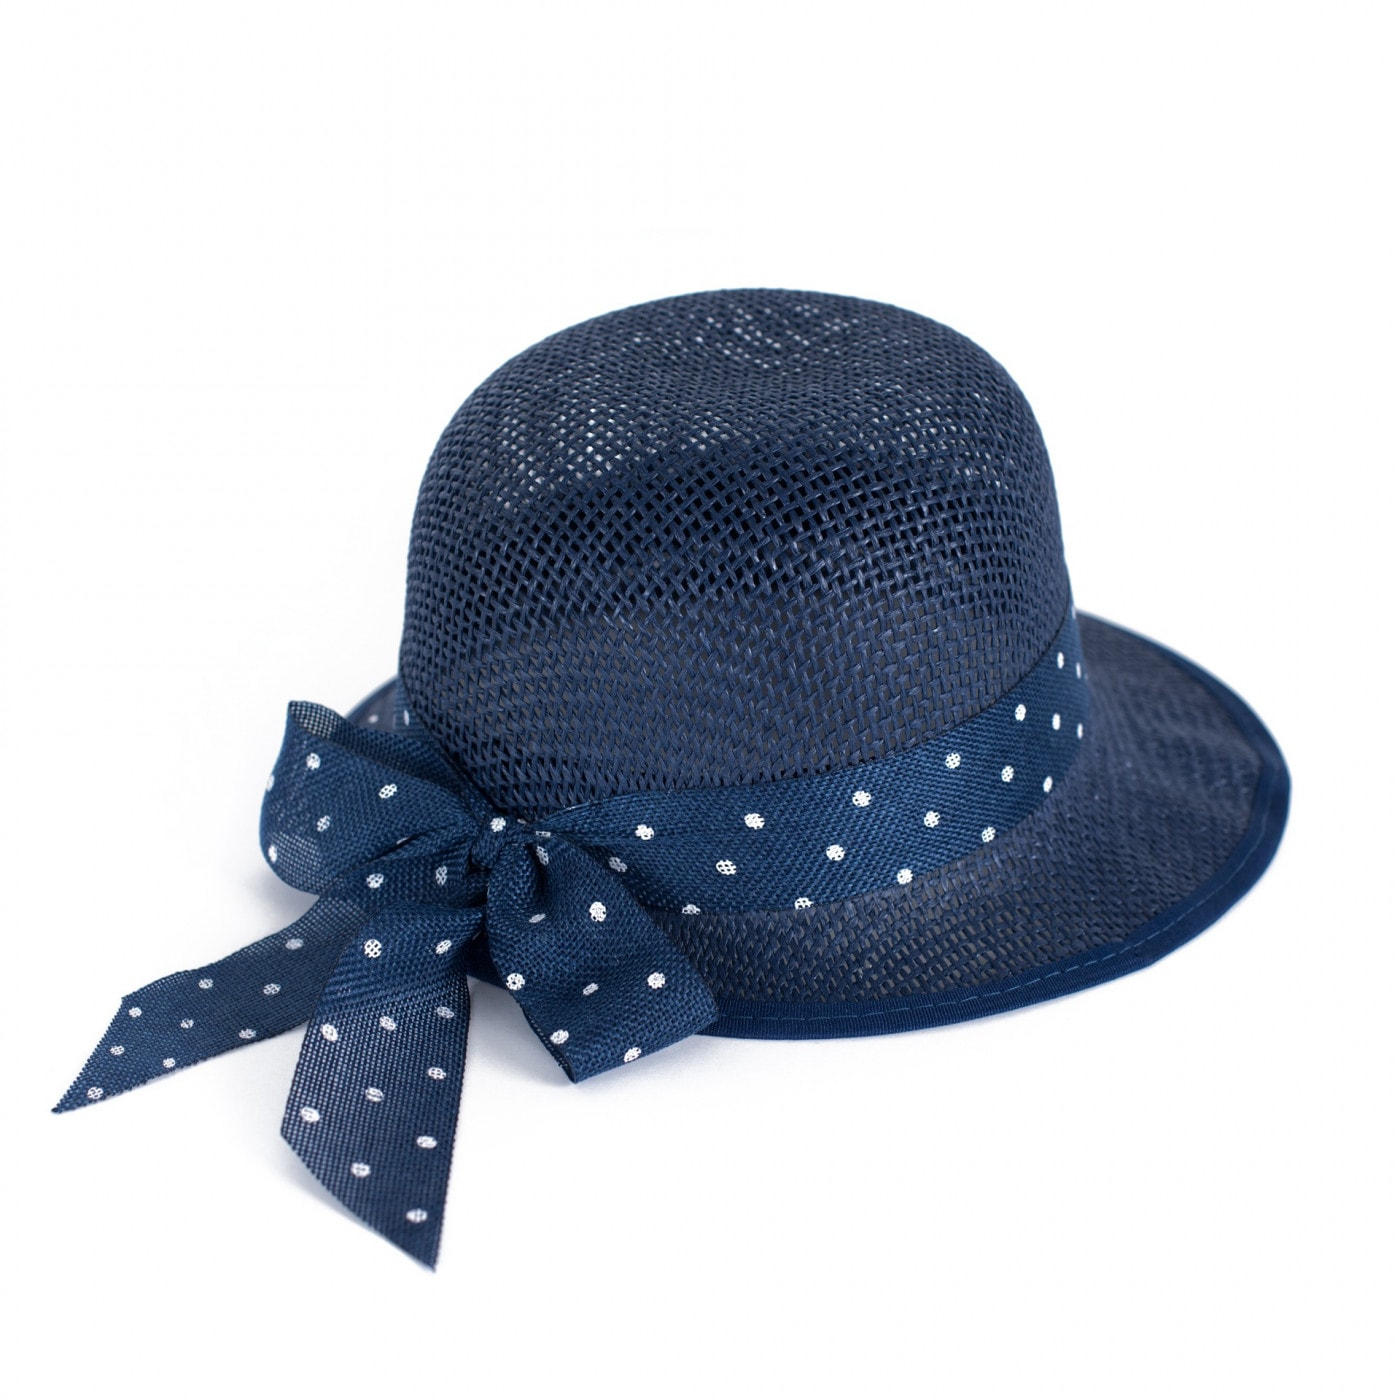 Art Of Polo Woman's Hat cz19141 Navy Blue